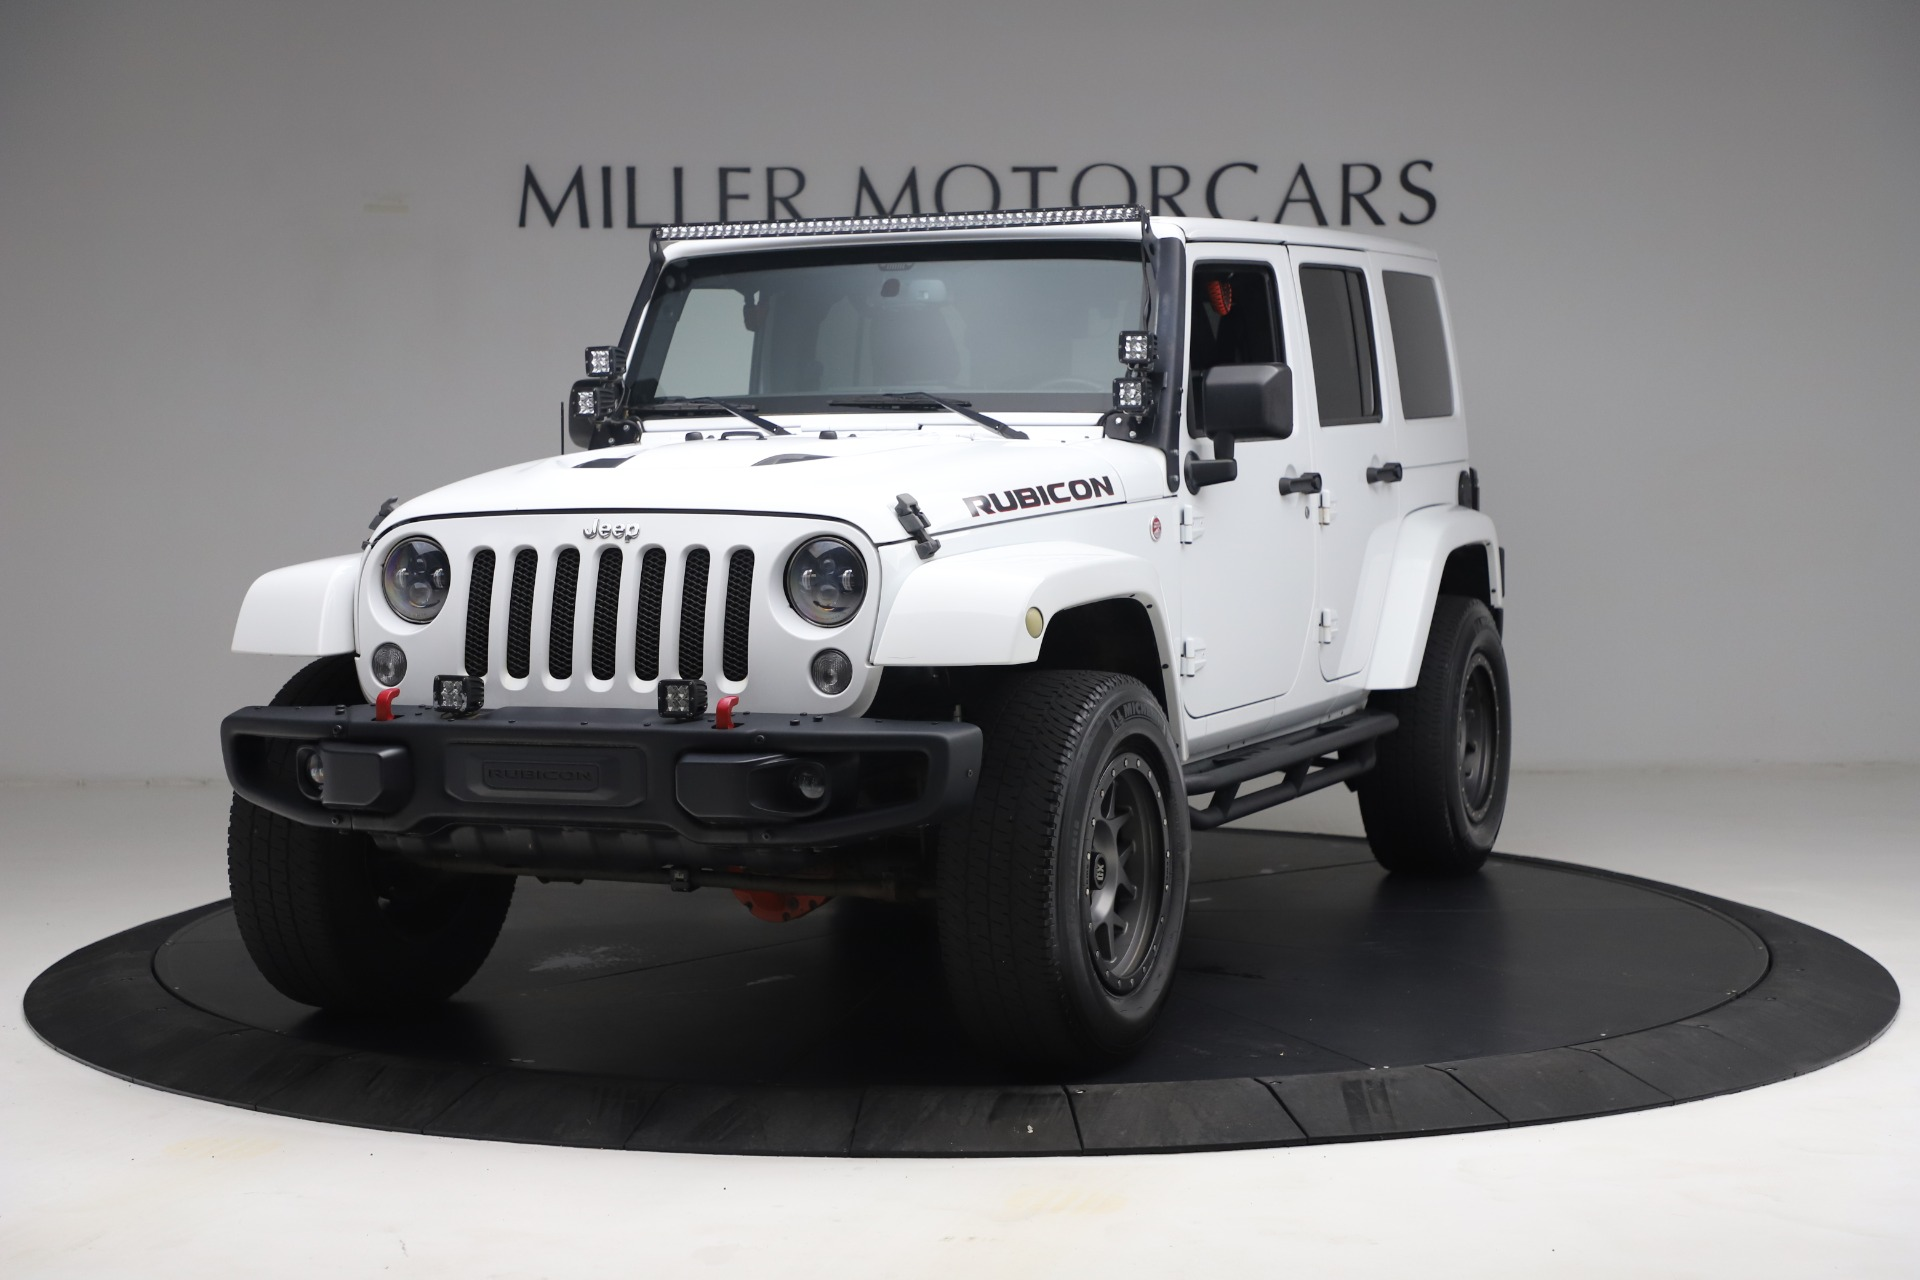 Used 2015 Jeep Wrangler Unlimited Rubicon Hard Rock for sale $39,900 at Alfa Romeo of Westport in Westport CT 06880 1